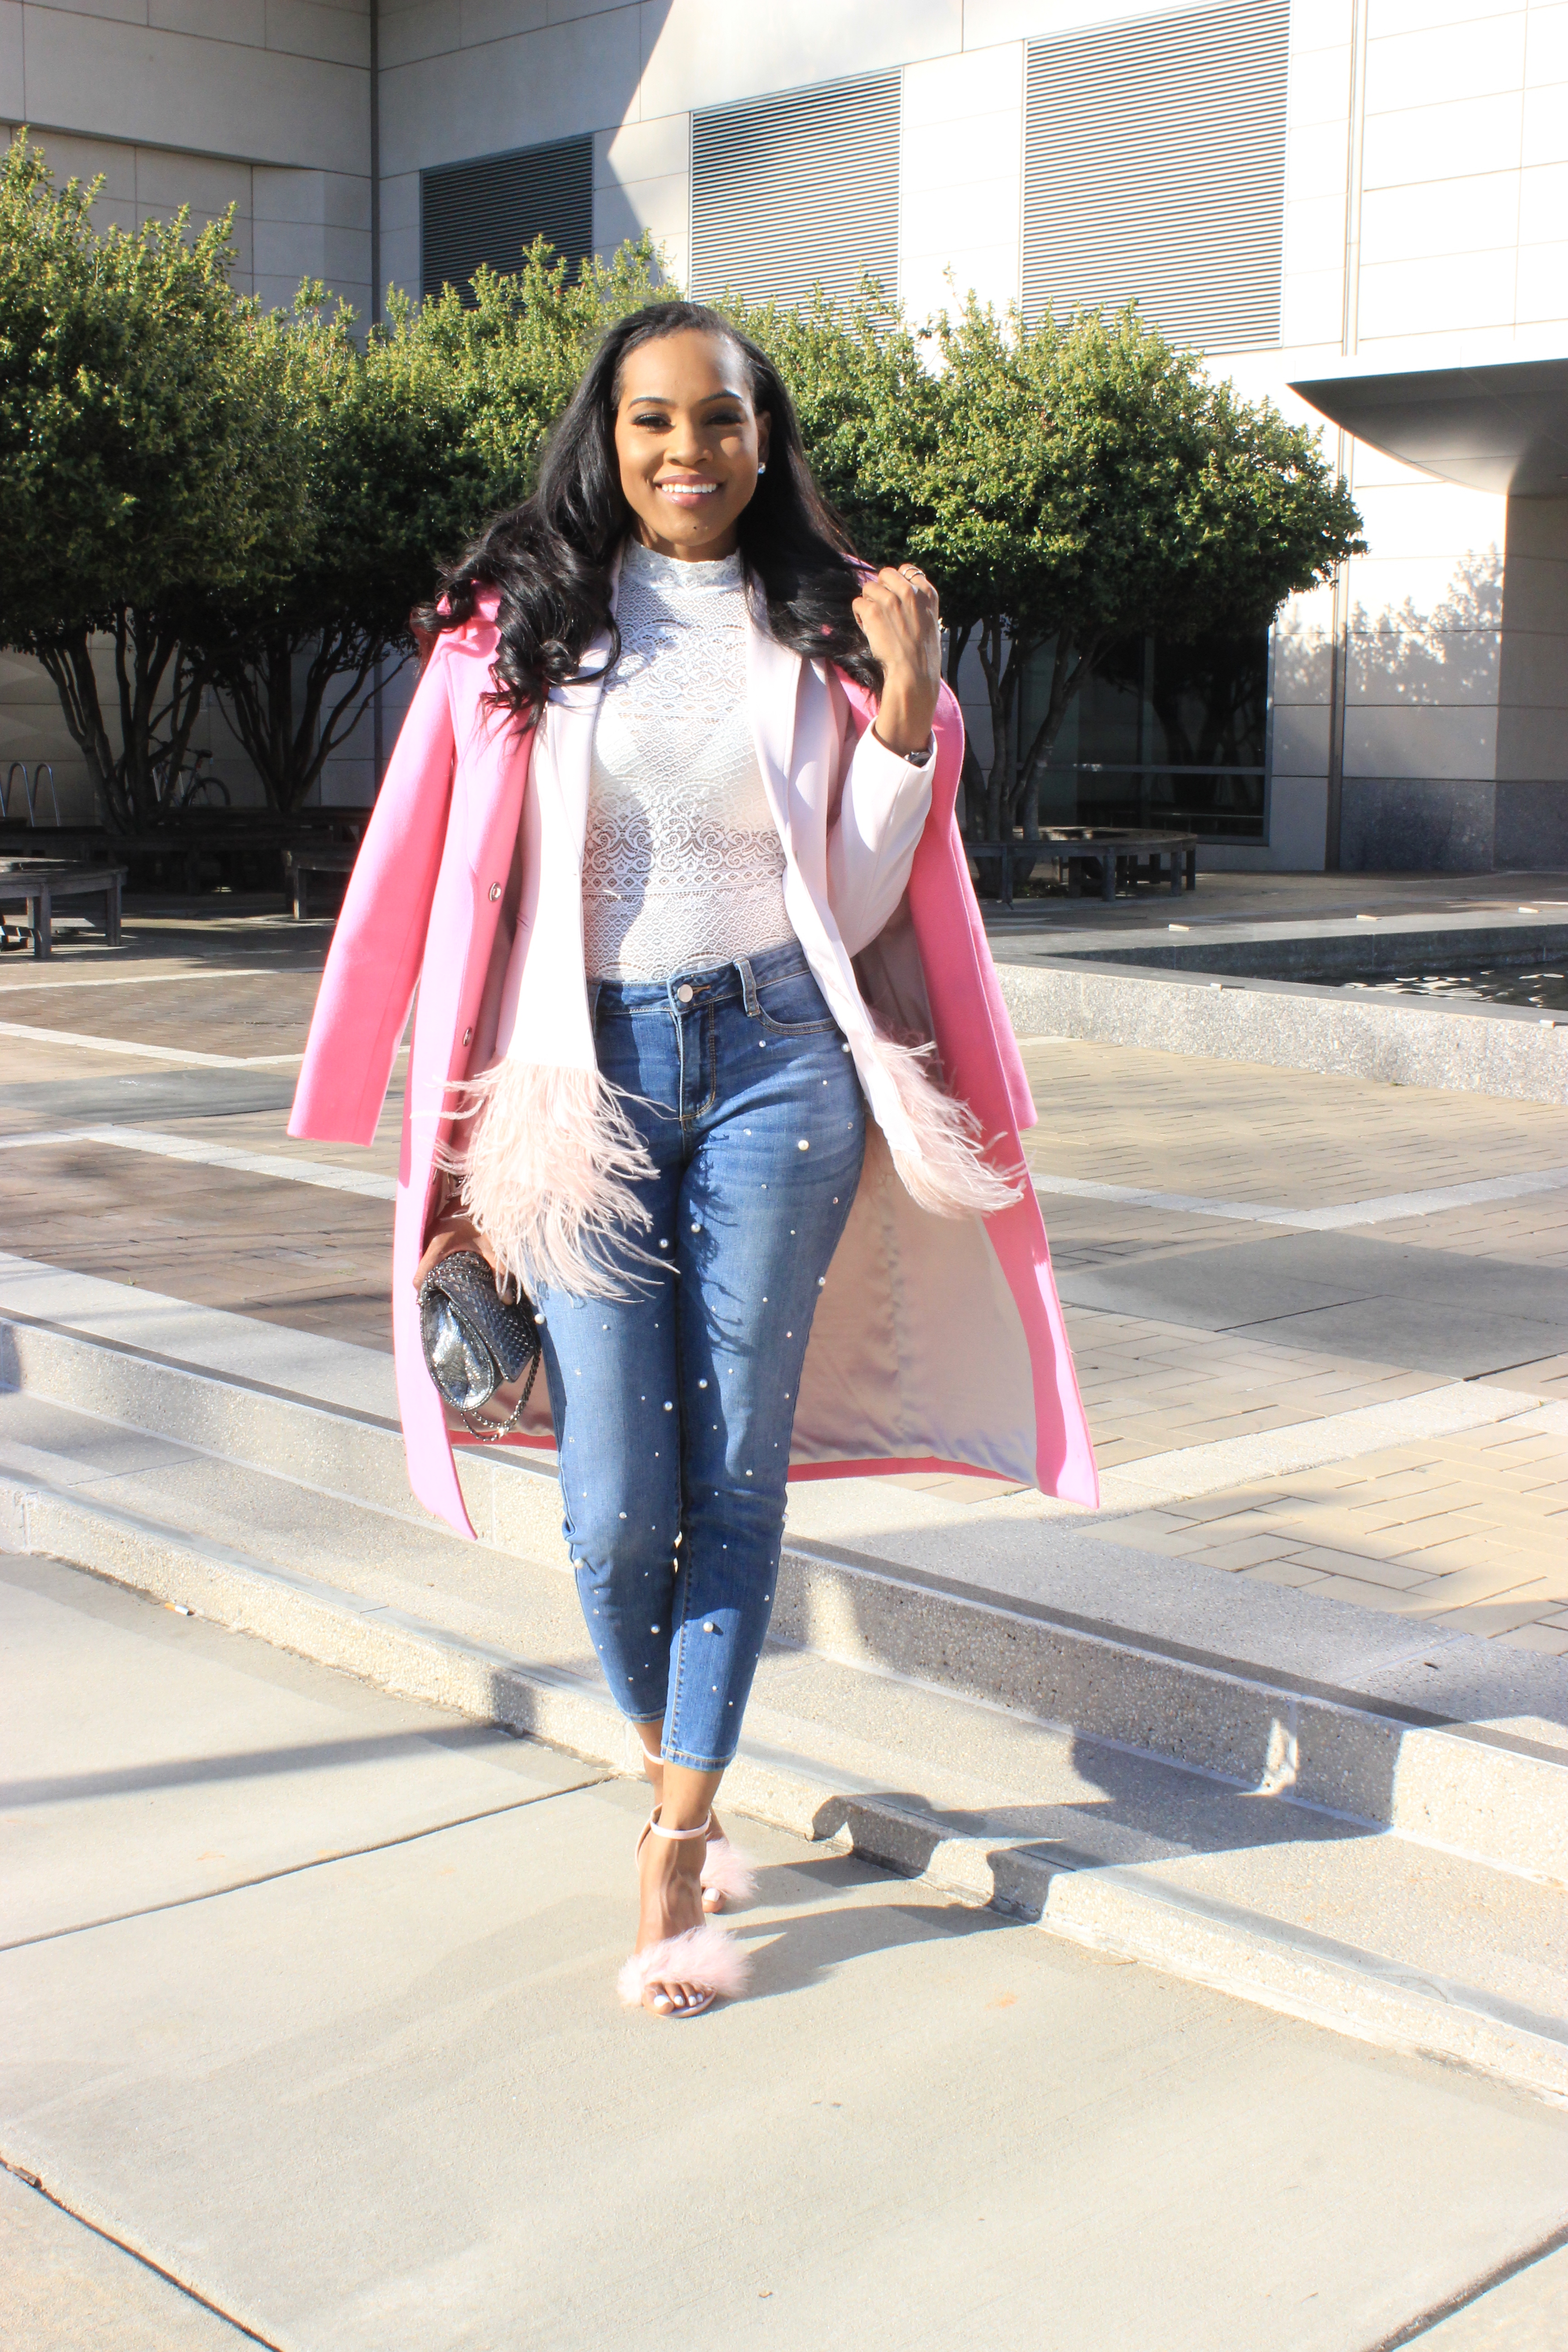 Style-files-Forver21-Semi-Sheer Lace Bodysuit-Alabama-top-blogger-birmingham-top-blogger-Missguided-Women- Pink Glitter-And-Feather-Block- Heel-Sandals-Gianni-Bini- Feather-Trim-Blazer-ANA-Pearl-Embellished-Skinny Jeans-11